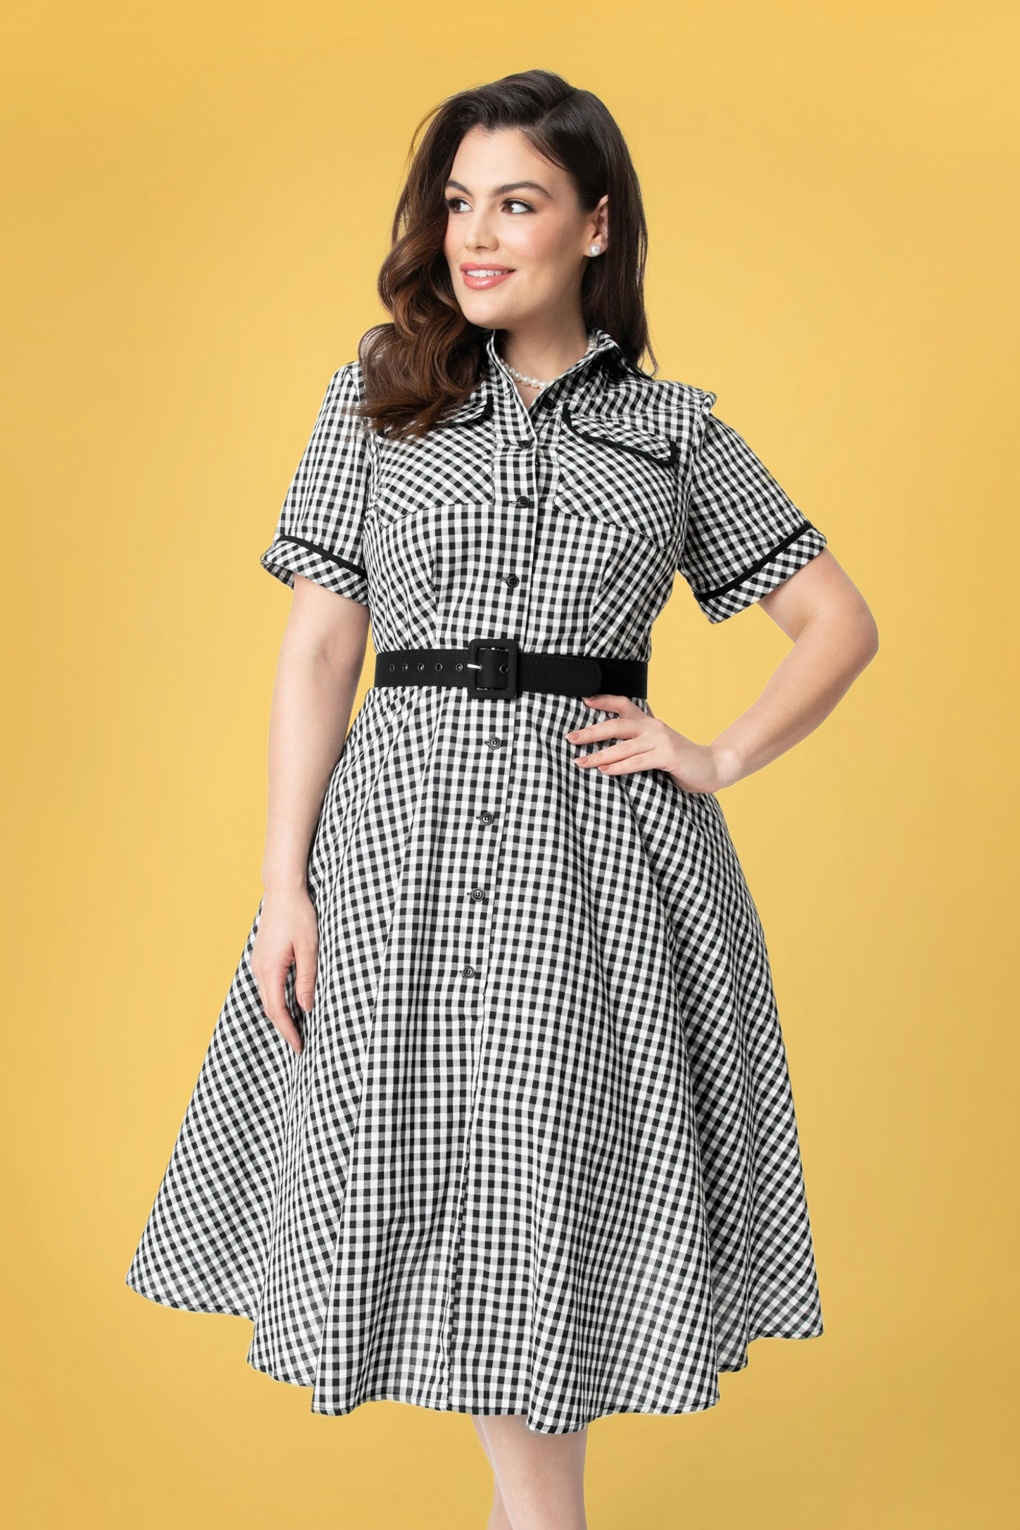 What Did Women Wear in the 1950s? 1950s Fashion Guide 50s I Love Lucy x UV Ethel Swing Dress in Black and White Gingham £111.65 AT vintagedancer.com